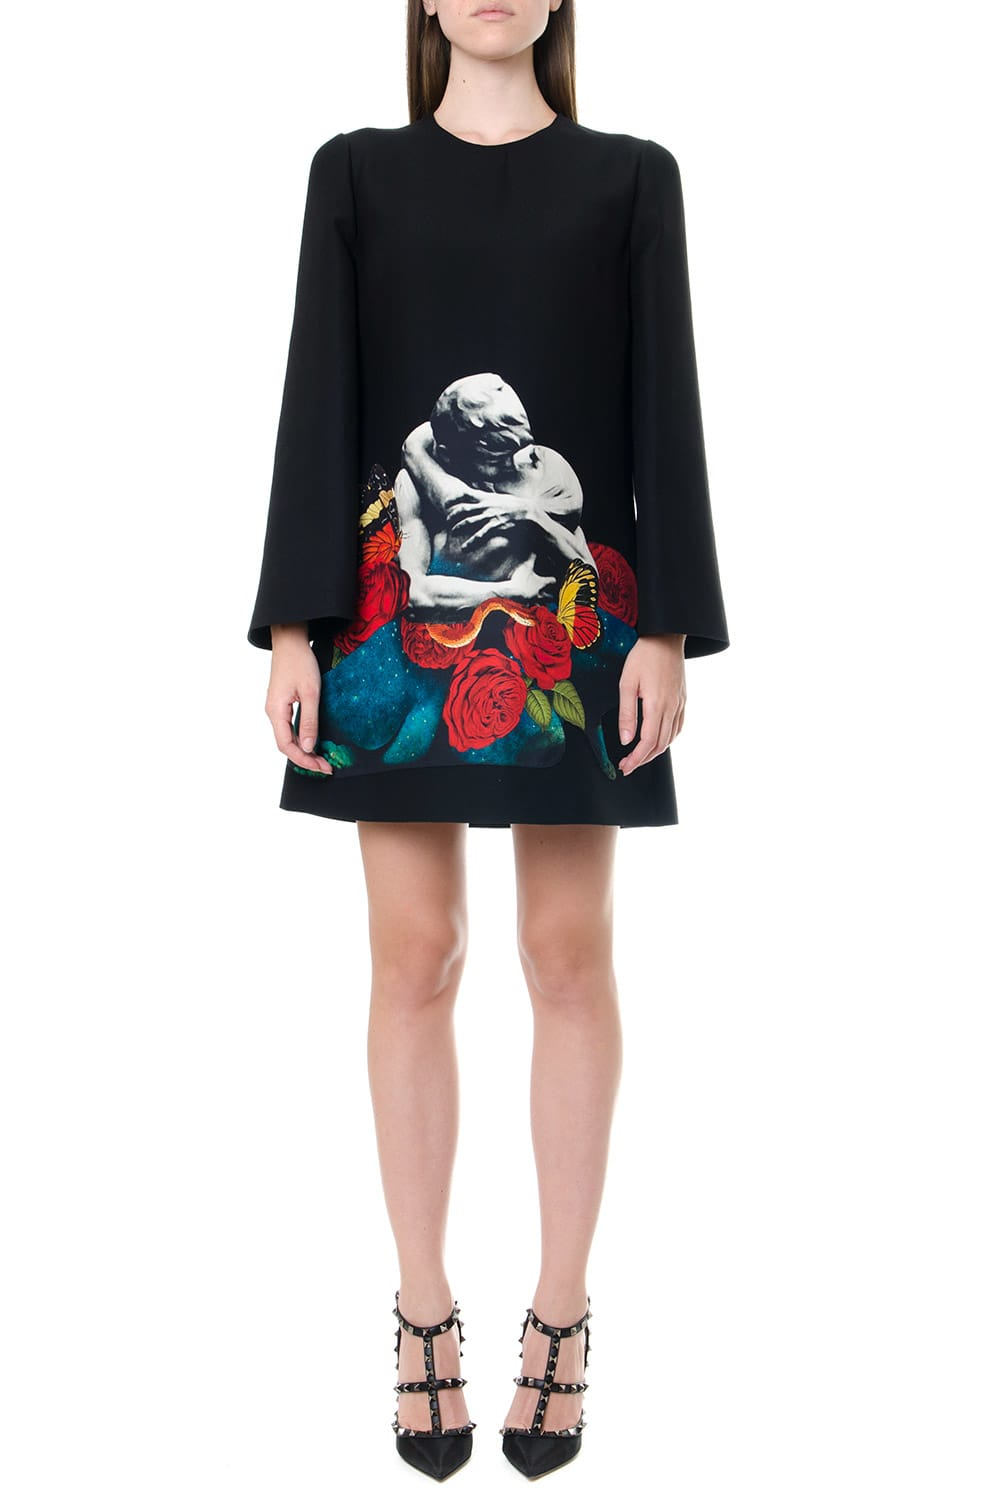 Valentino Printed Patch Black Crepe Couture Dress